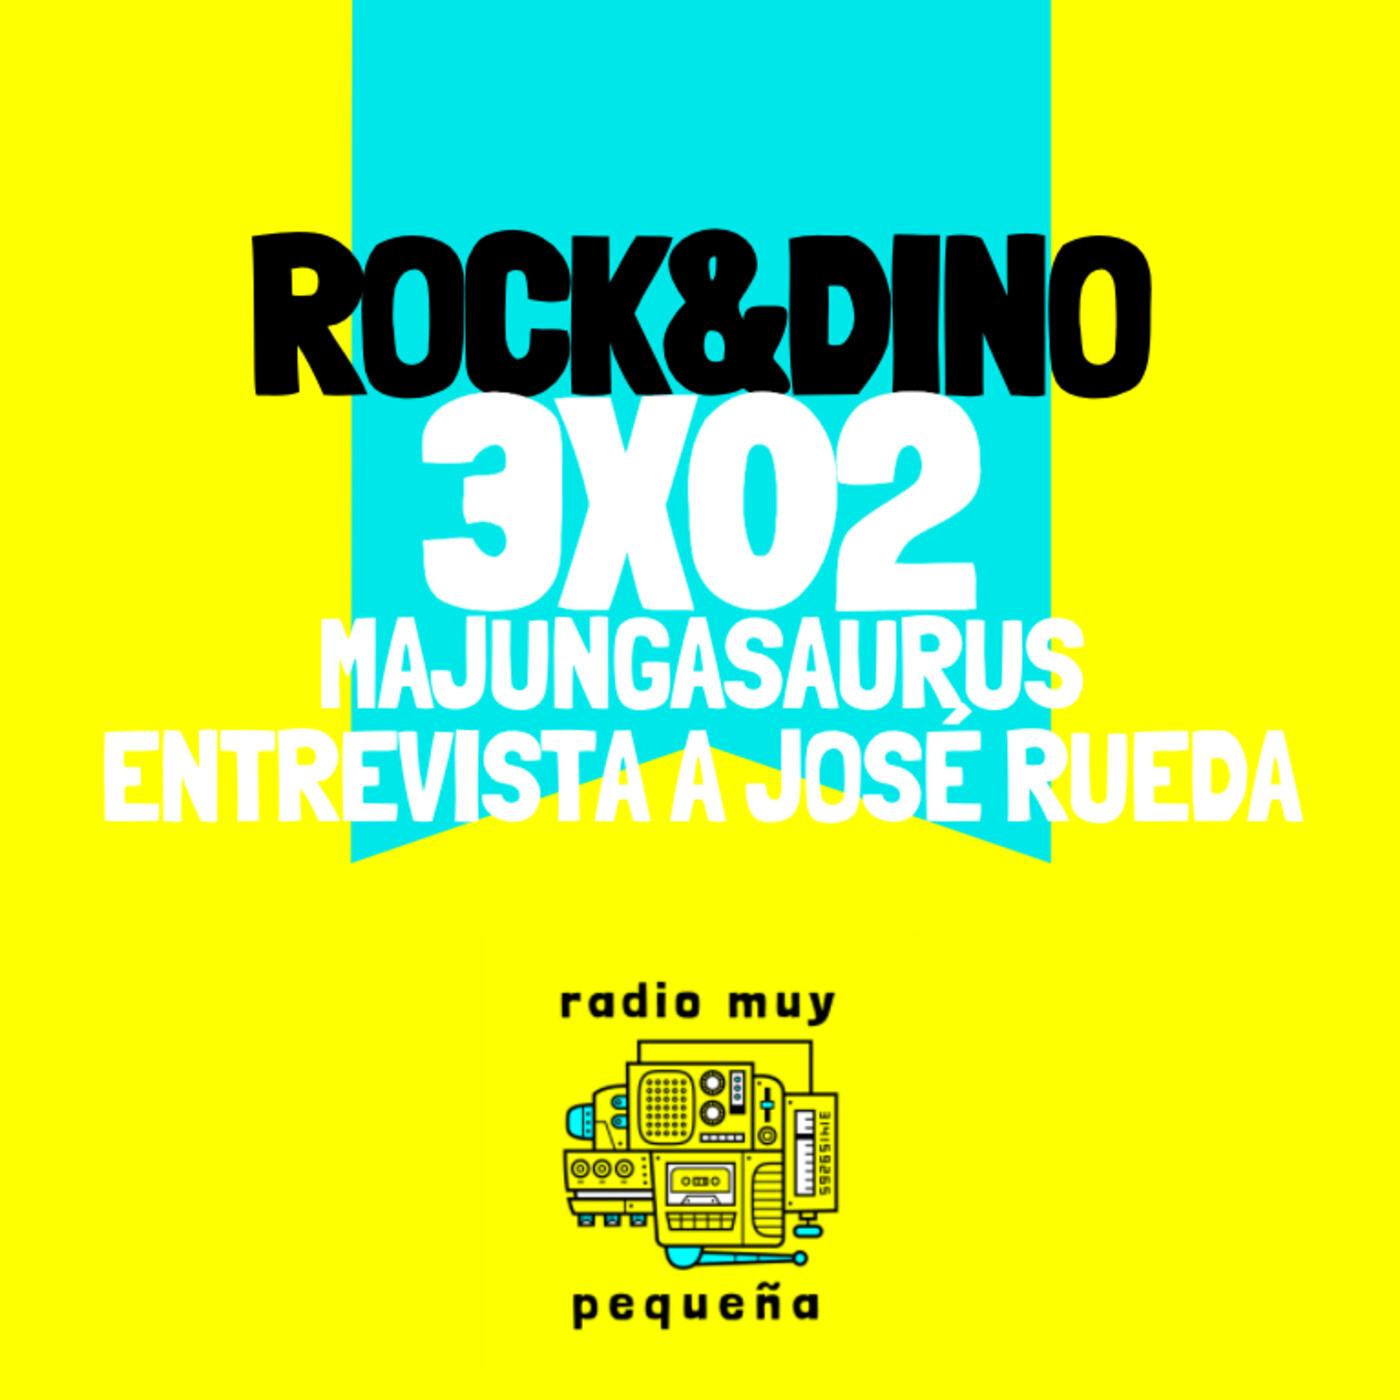 Rock and Dino I 3x02 l Majungasaurus y José Rueda